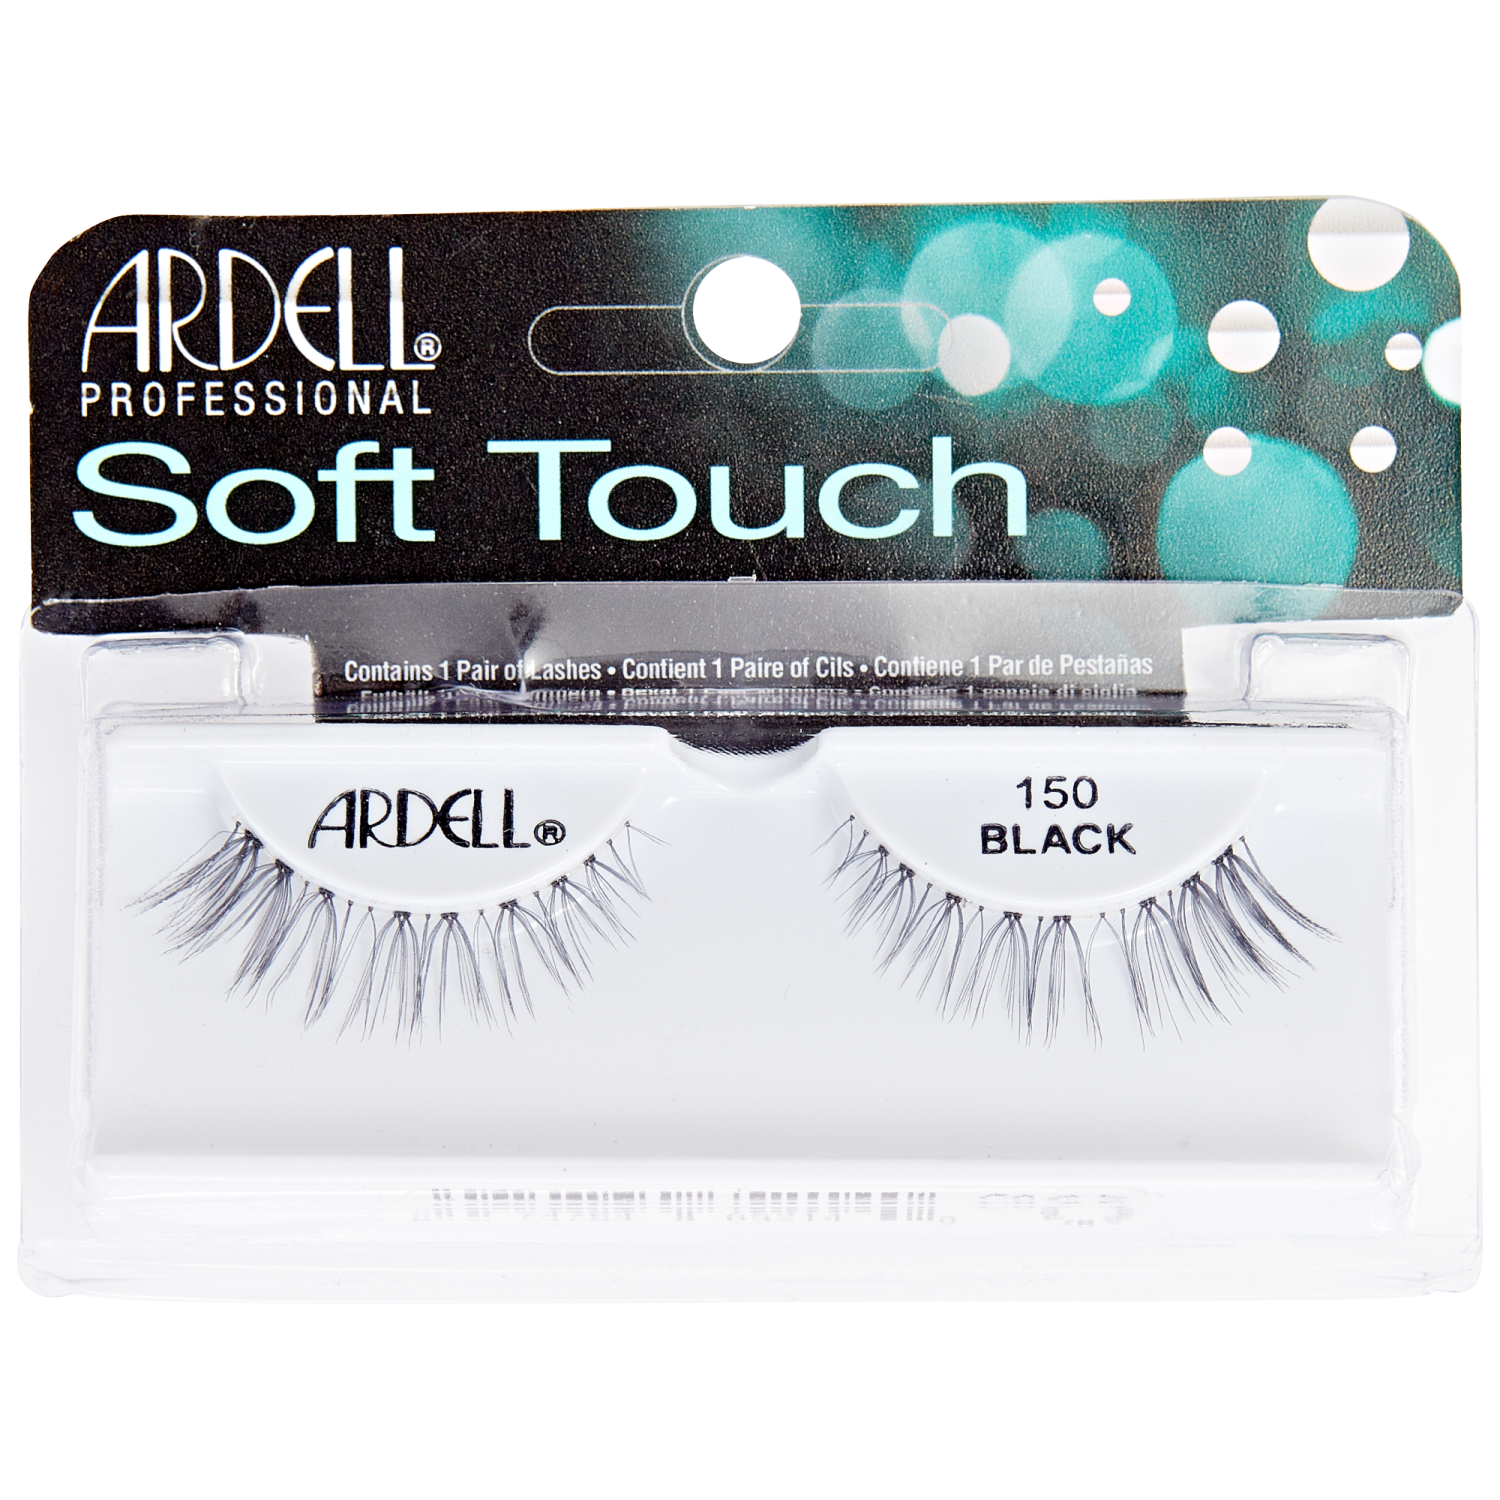 316c42ceae1 Soft Touch #150 Lashes | Make-Up | Lashes, Ardell eyelashes, Ardell ...